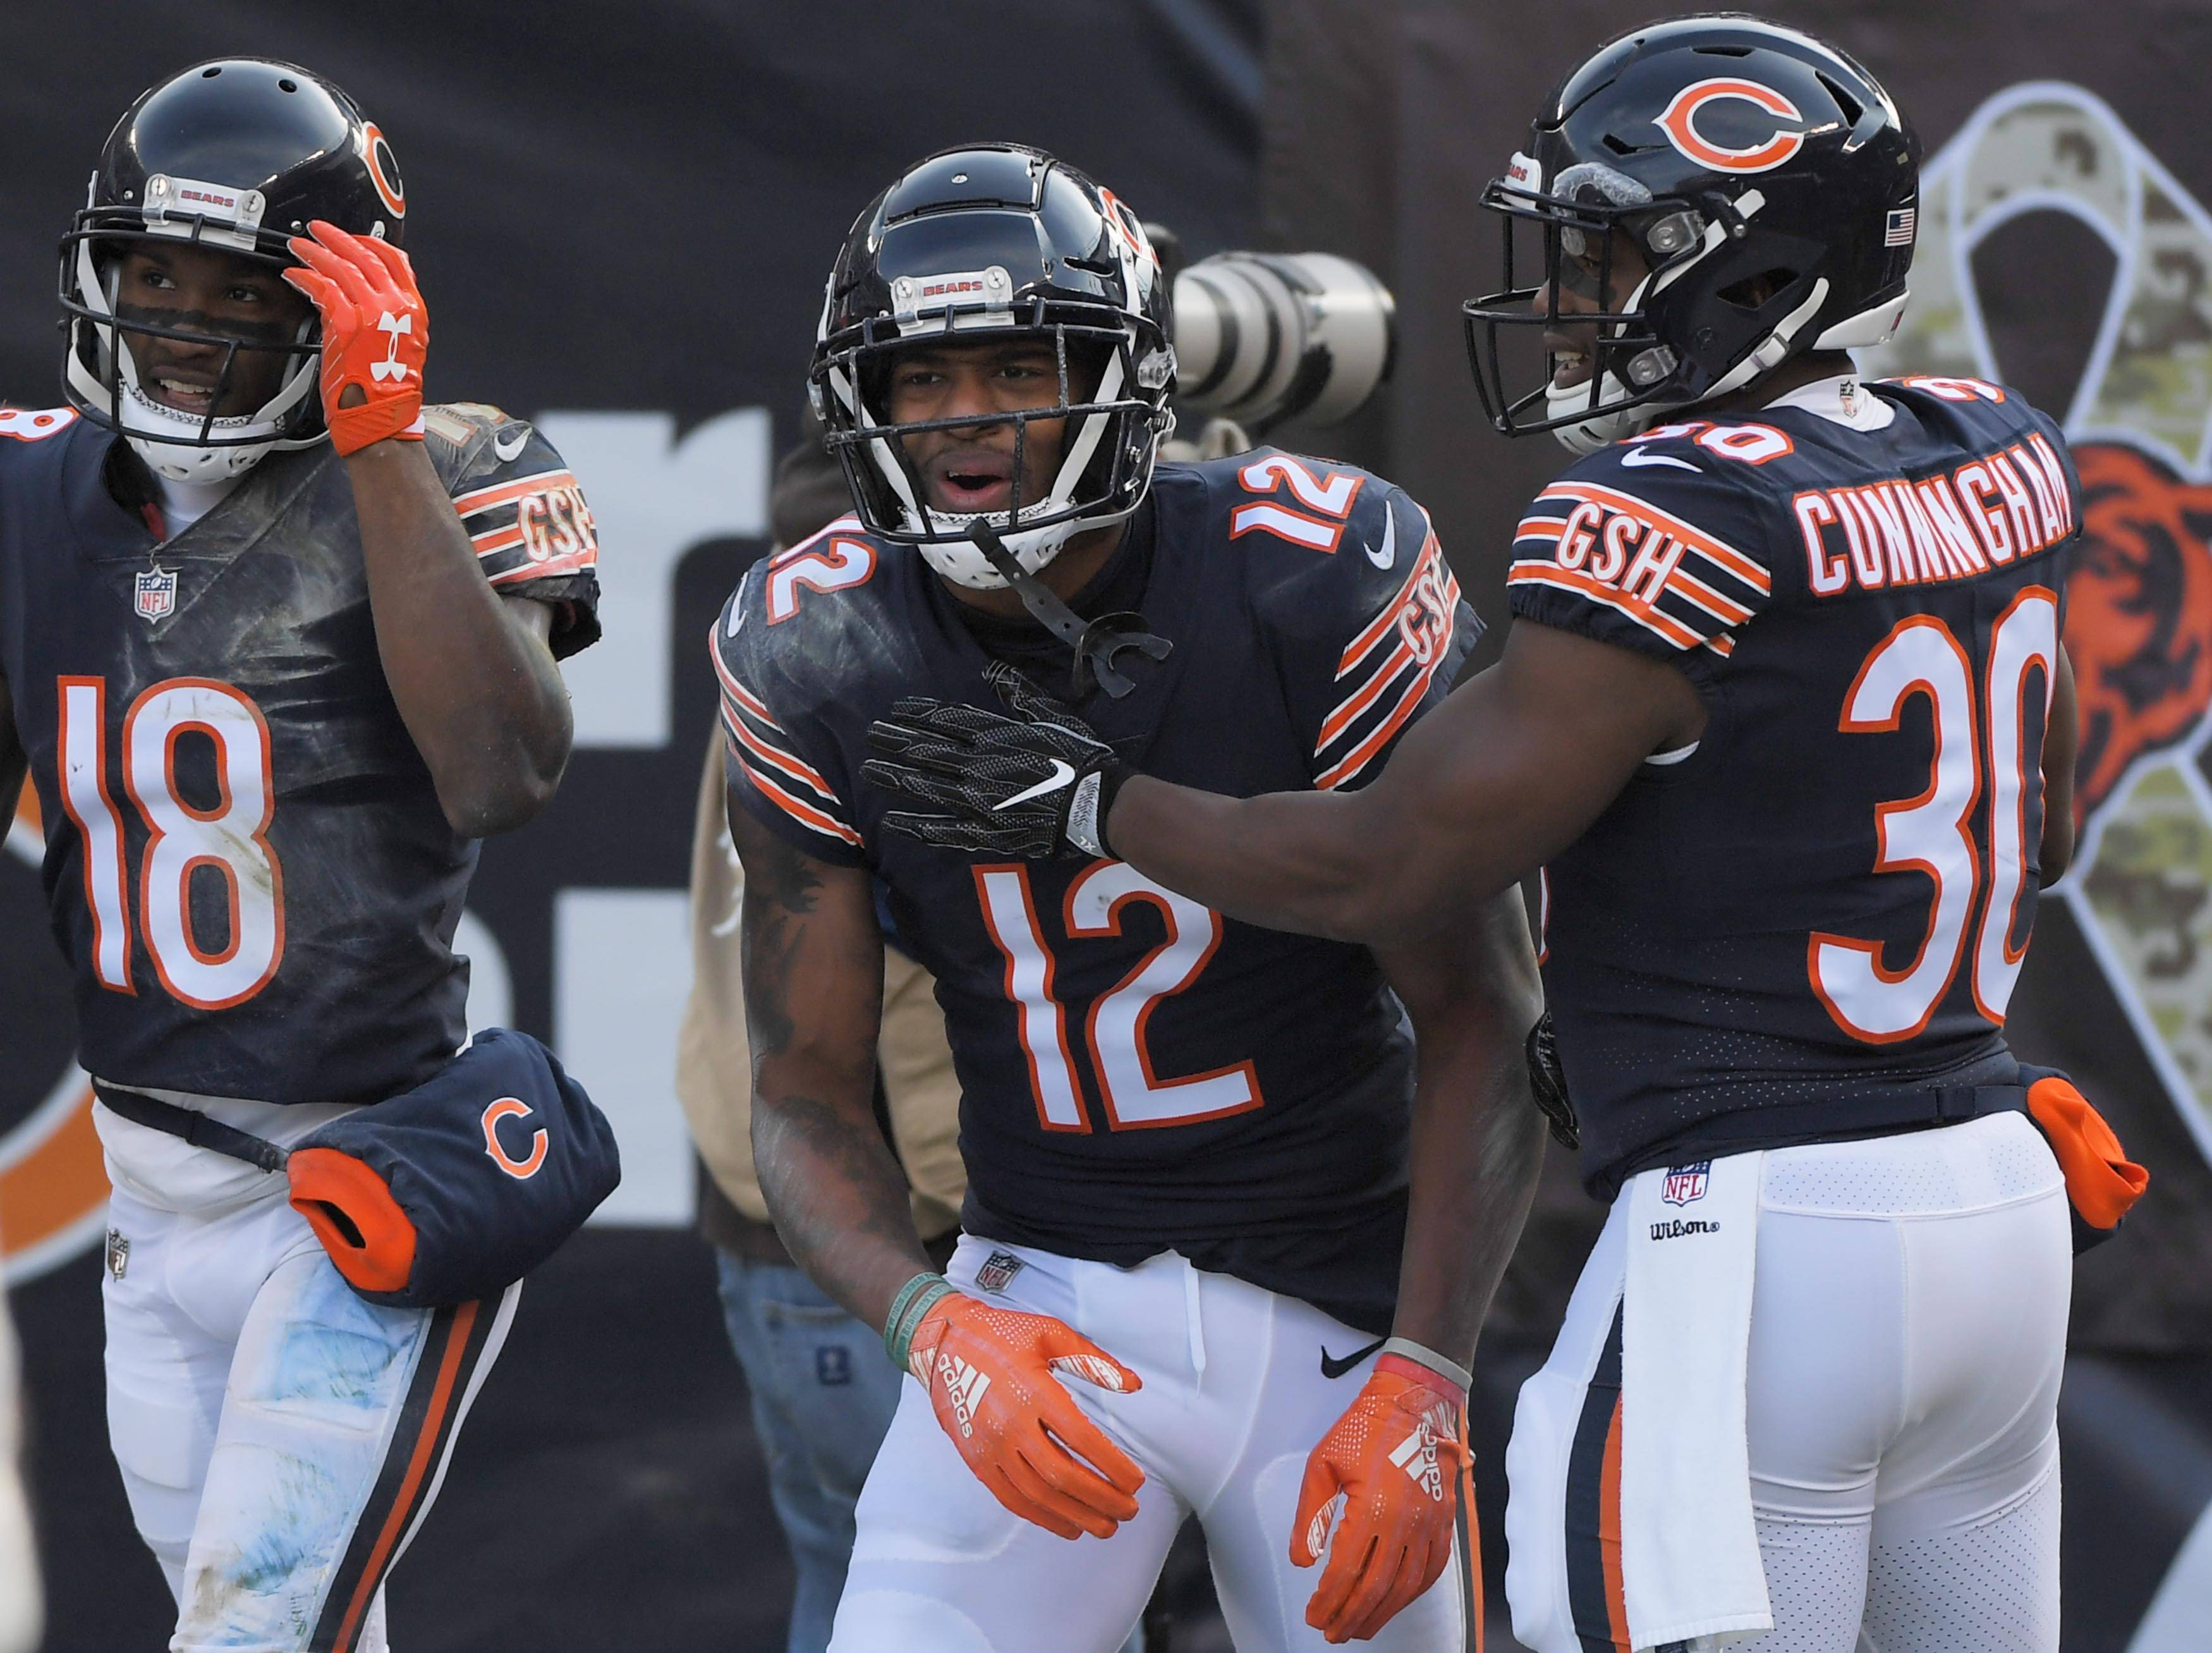 John Starks/jstarks@dailyherald.comChicago Bears wide receiver Allen Robinson celebrates his touchdown catch against the Detroit Lions Sunday at Soldier Field in Chicago.